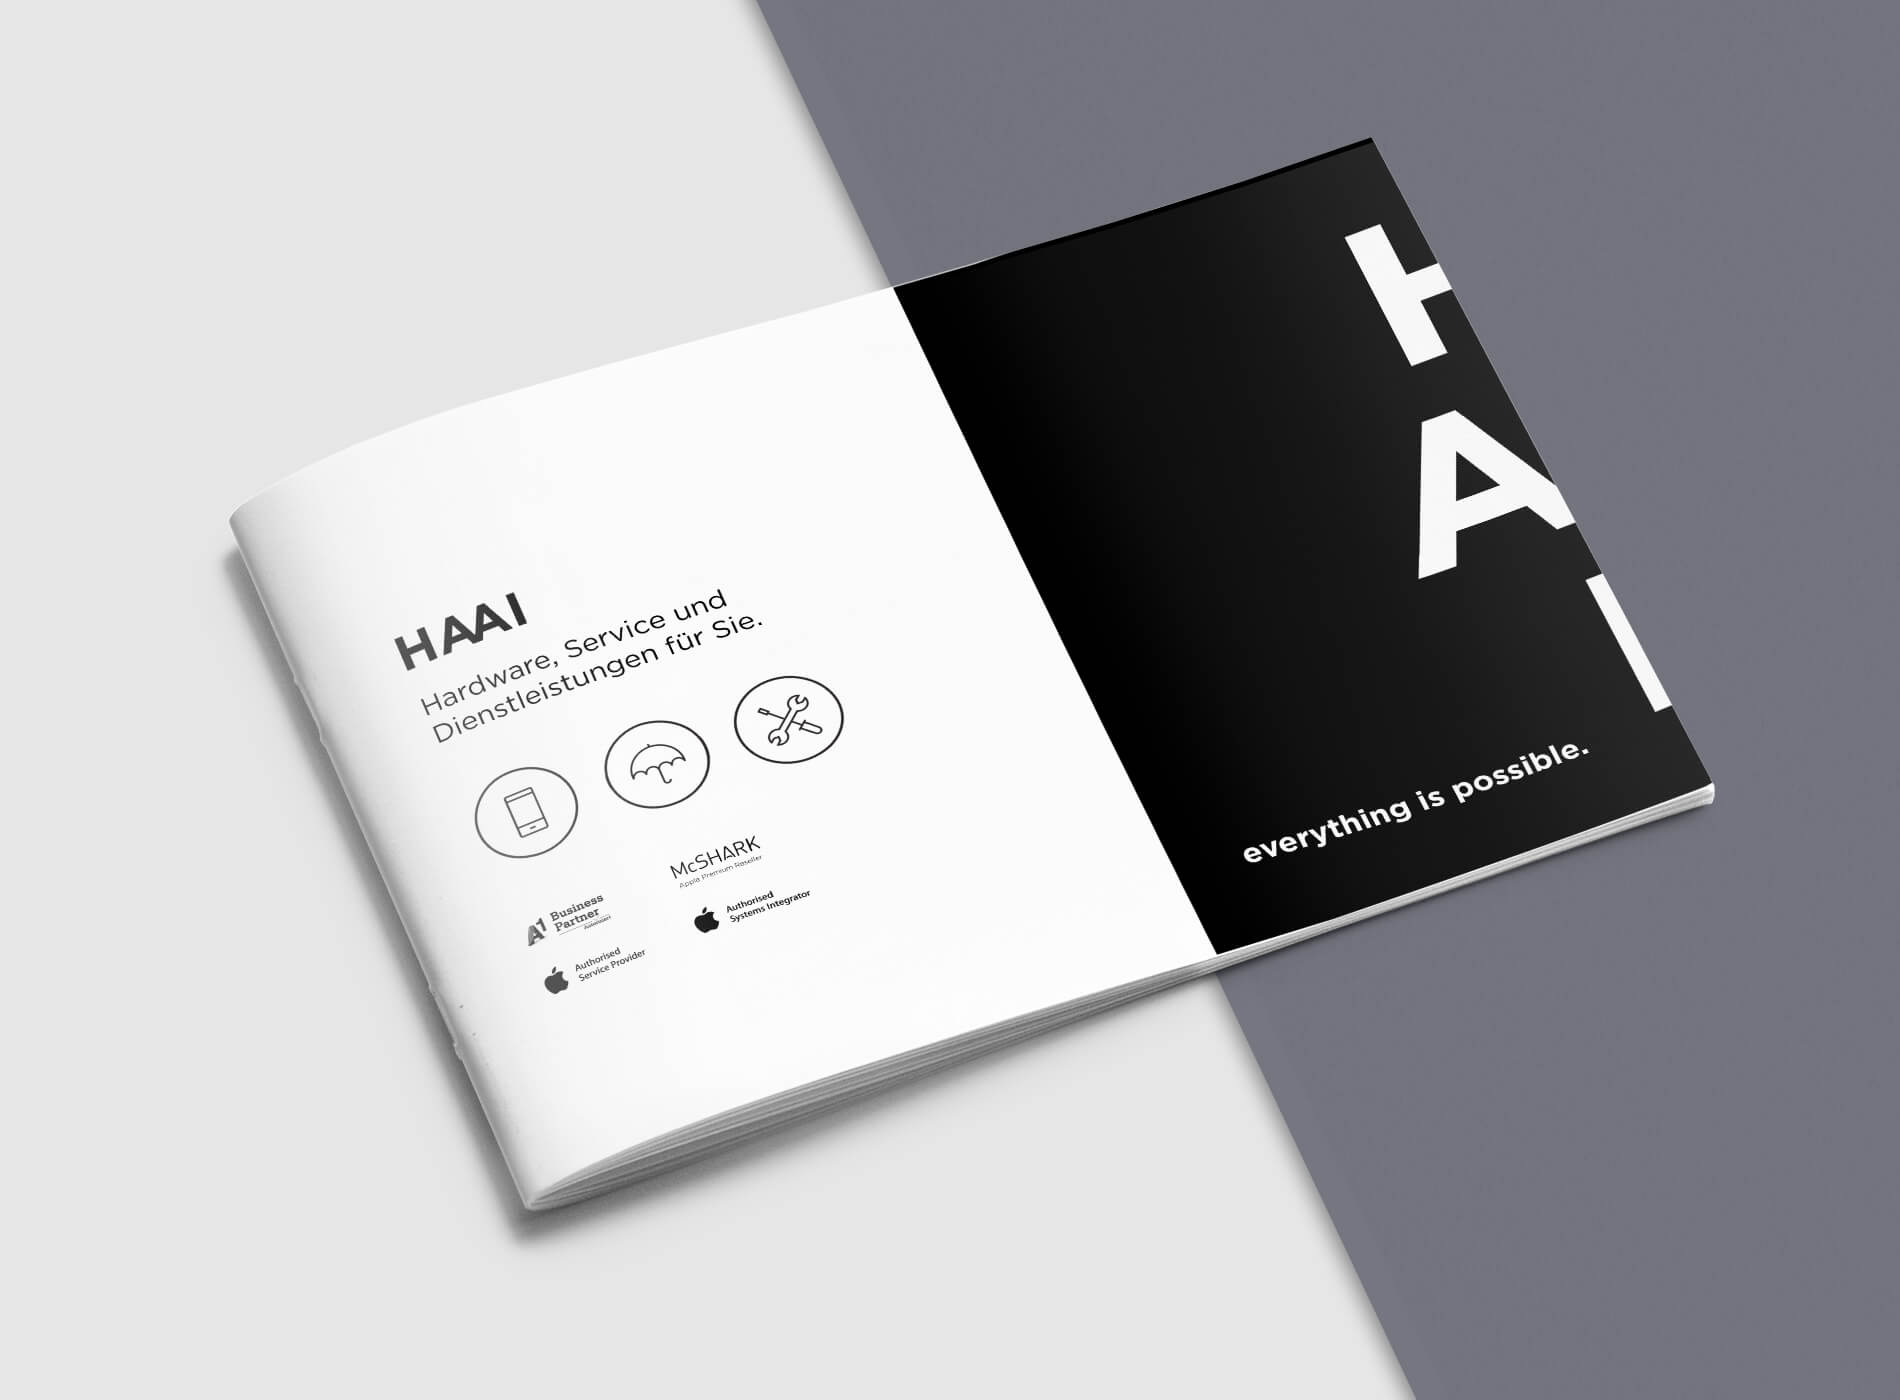 HAAI Magazin Grafikdesign